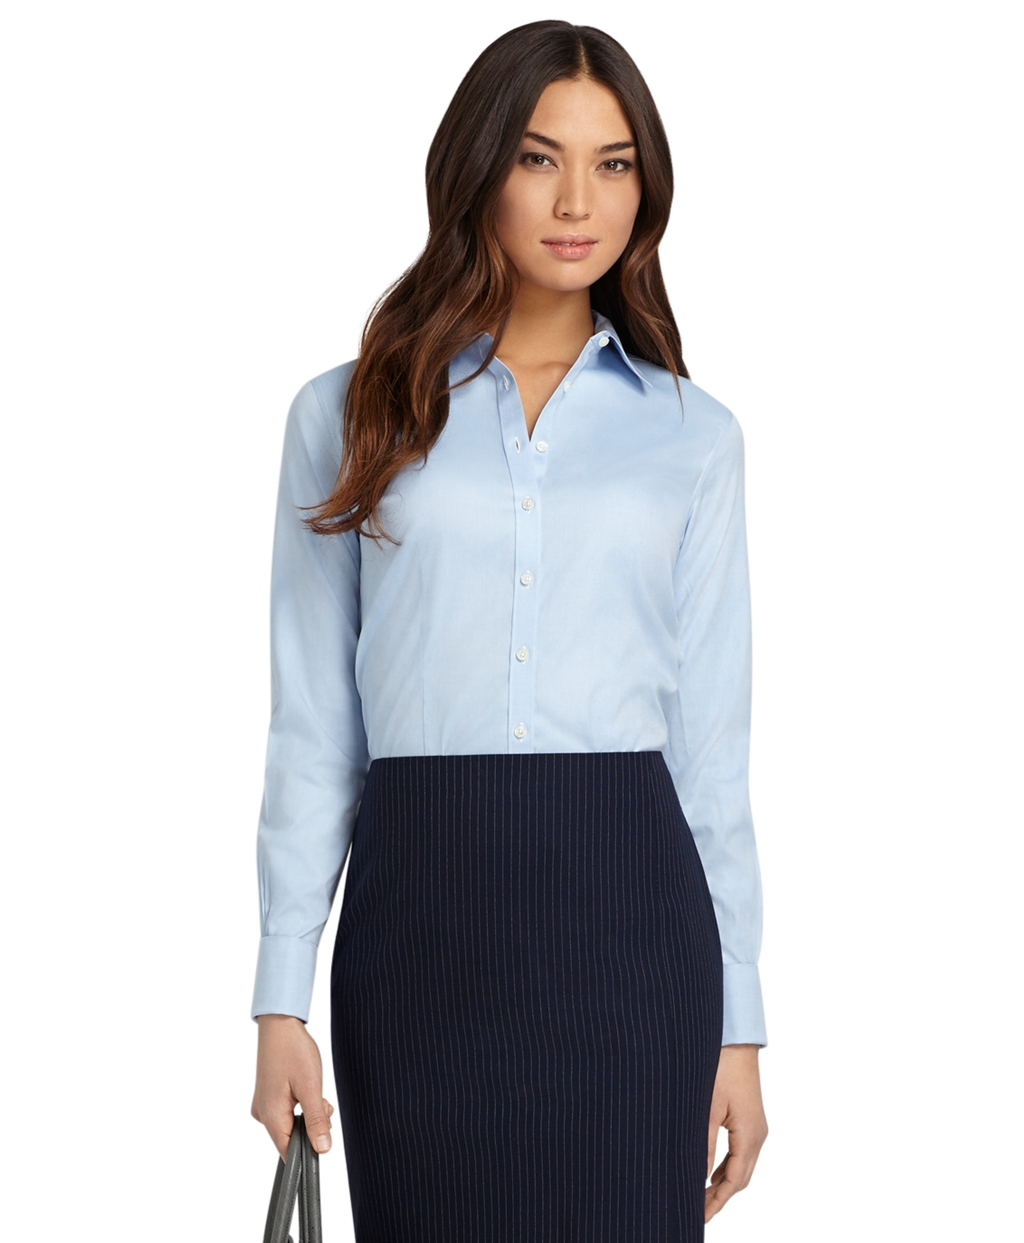 Women&-39-s Non-Iron Fitted French Cuff Dress Shirt - Brooks Brothers